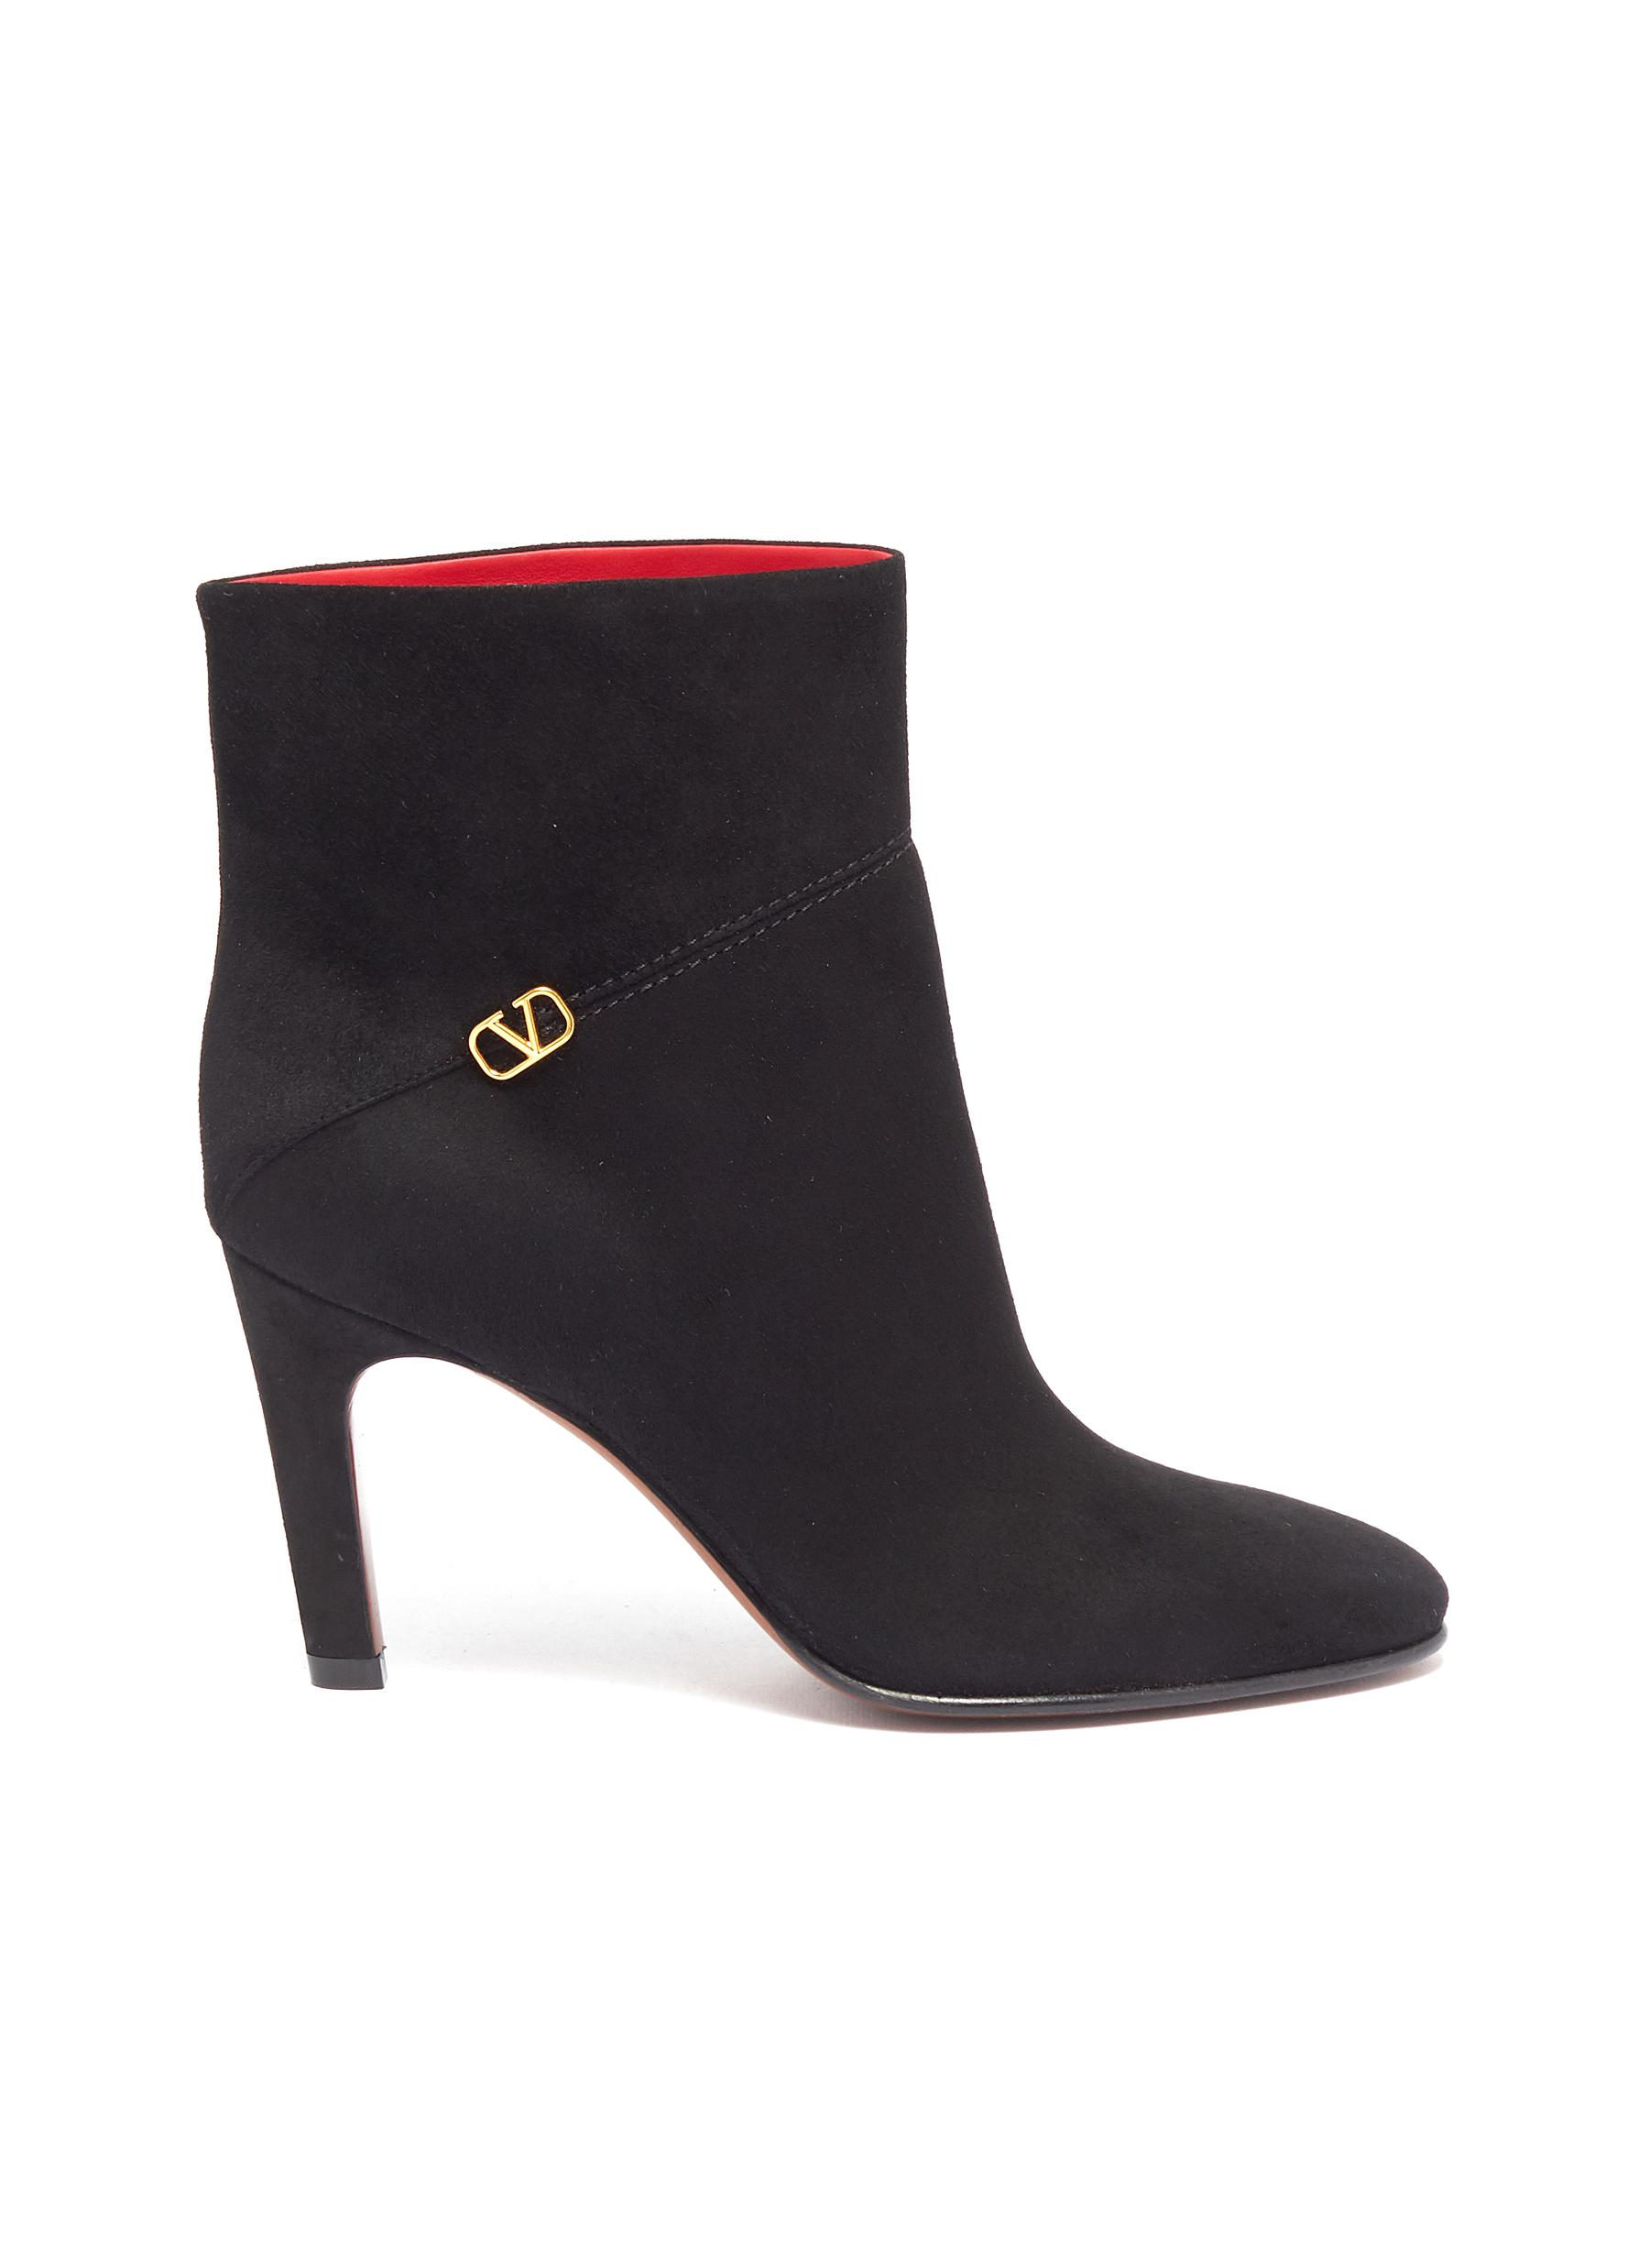 VLOGO suede ankle boots by Valentino